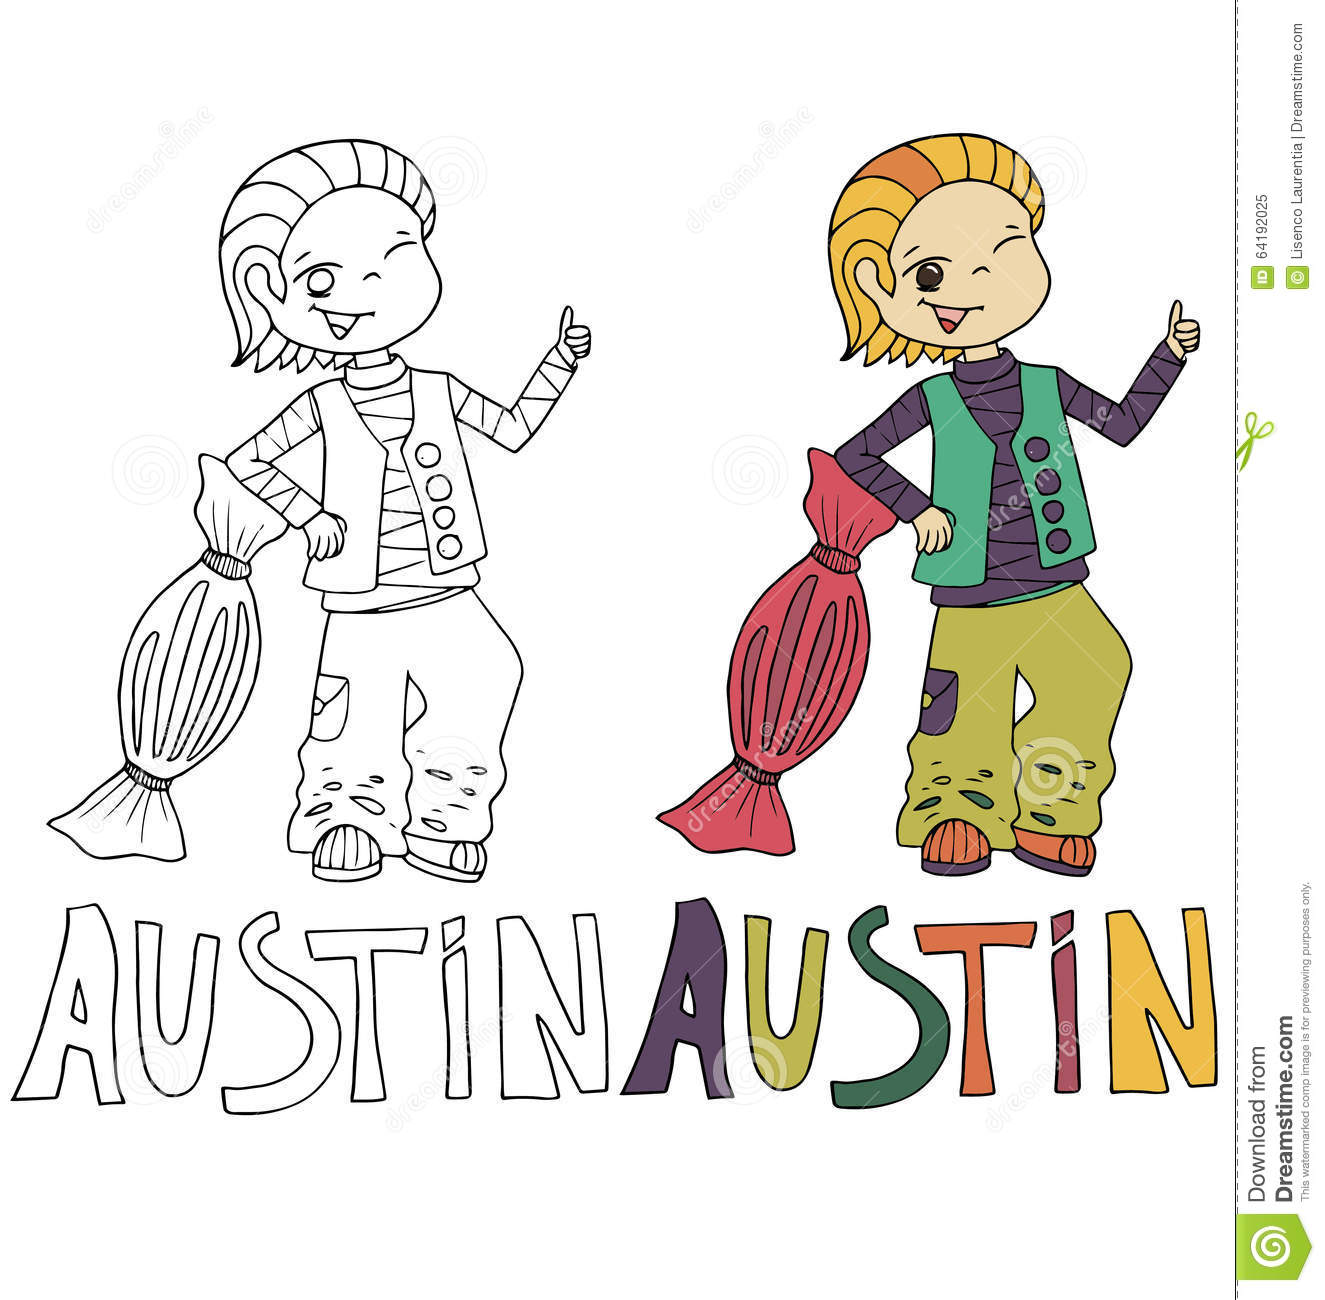 The Simple Drawing Cartoon For Coloring Image Of Children With